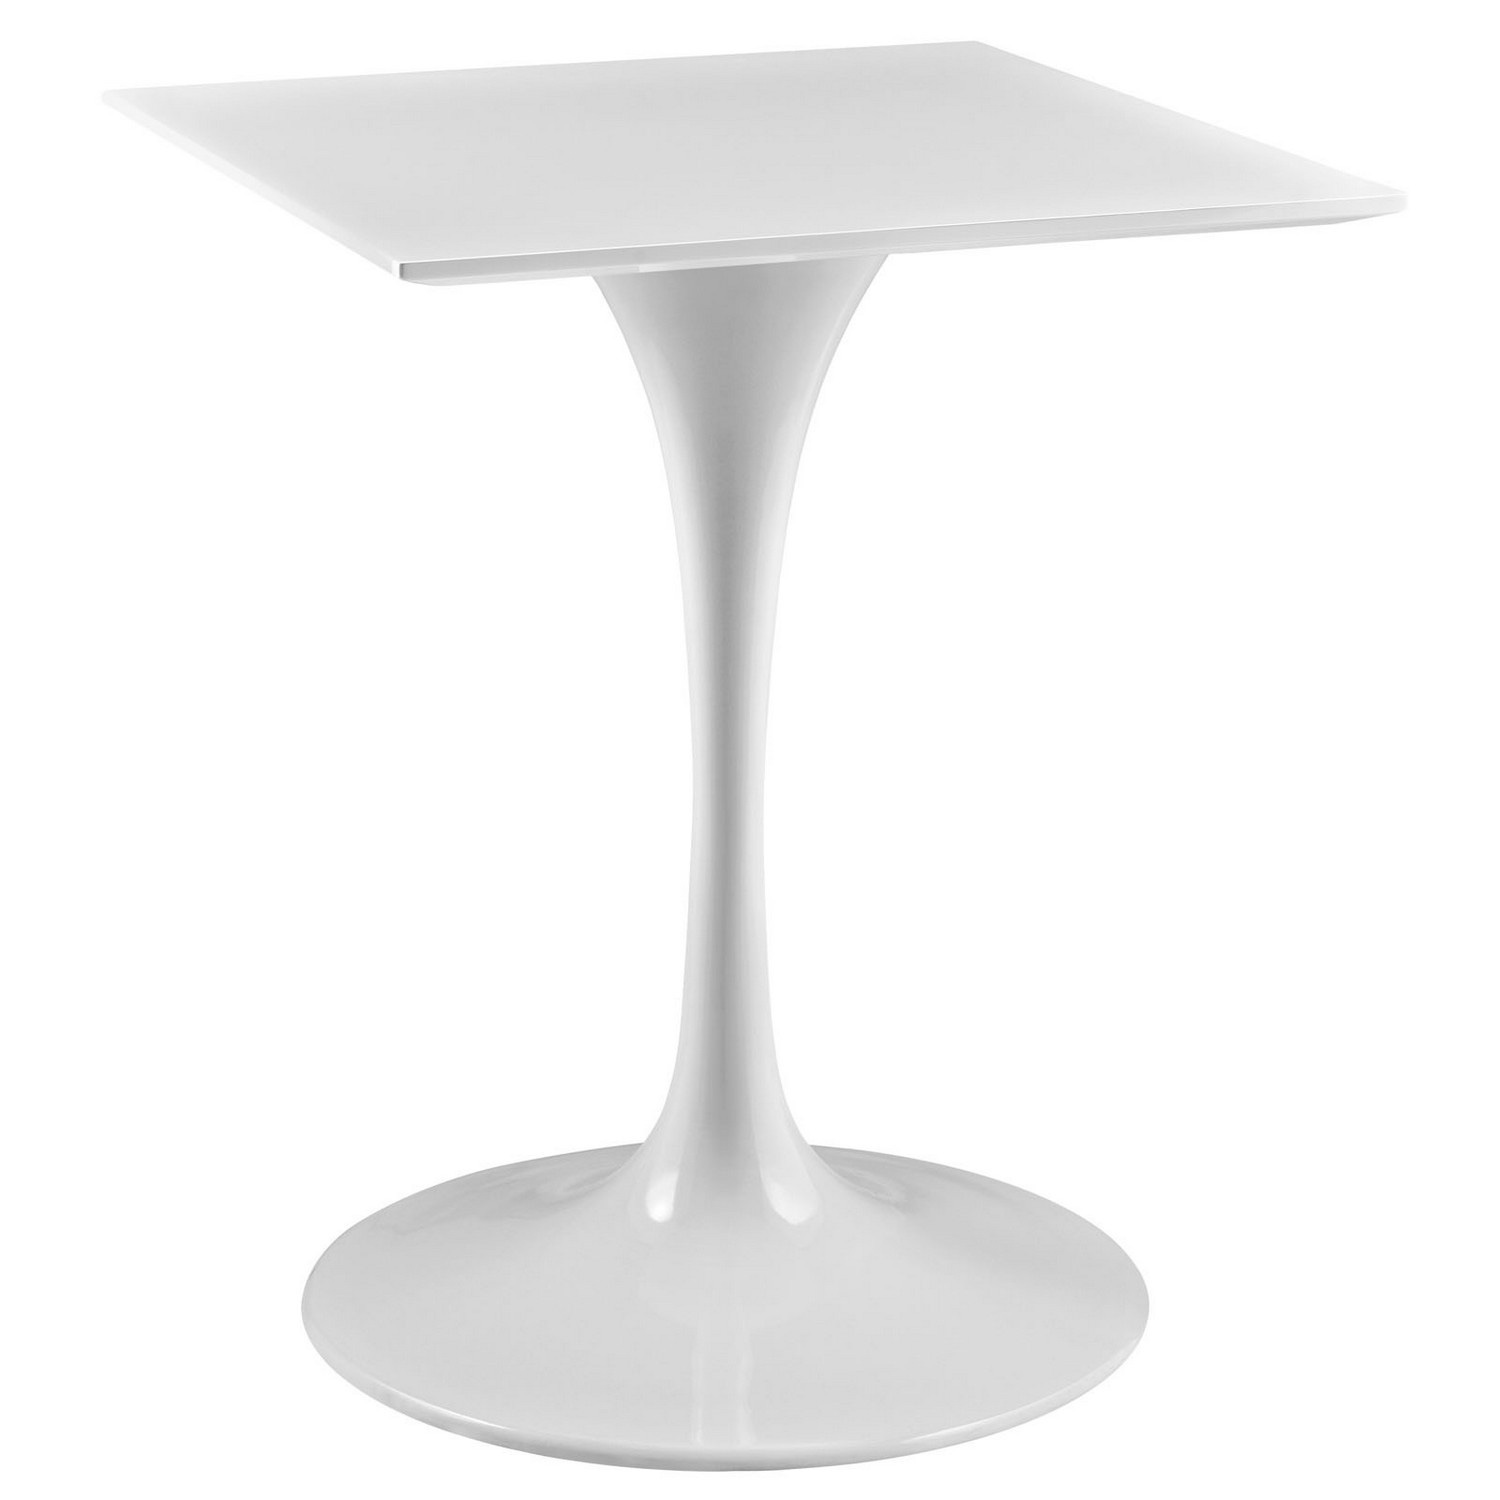 Modway Lippa 24 Wood Top Dining Table - White